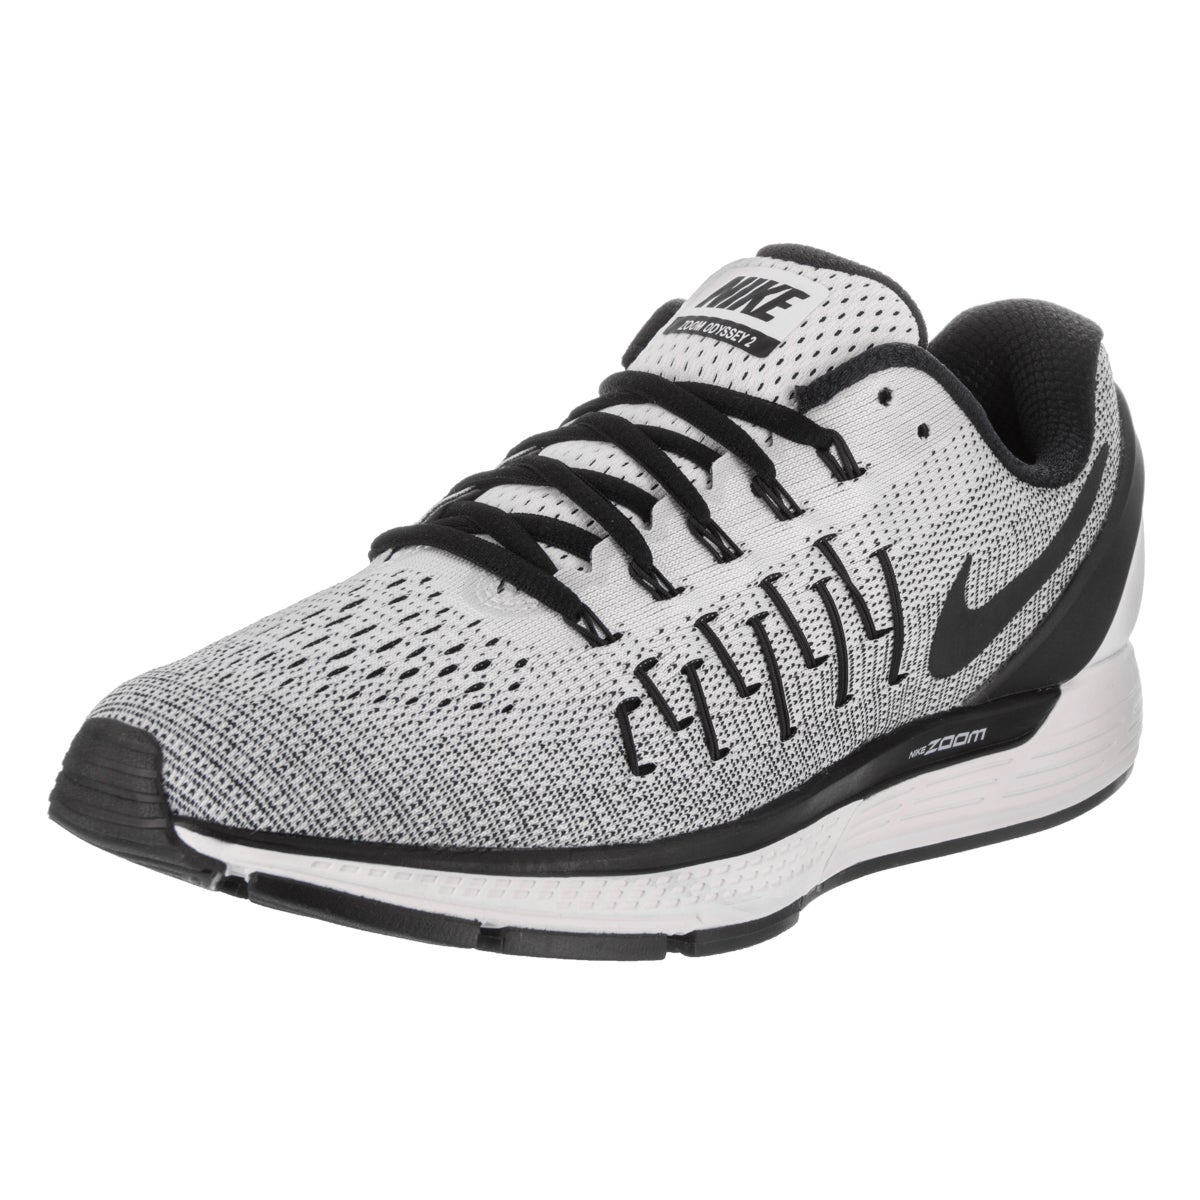 Mancha Coordinar humor  Nike Men's Air Zoom Odyssey 2 White Synthetic Leather Running Shoes -  Overstock - 14475870